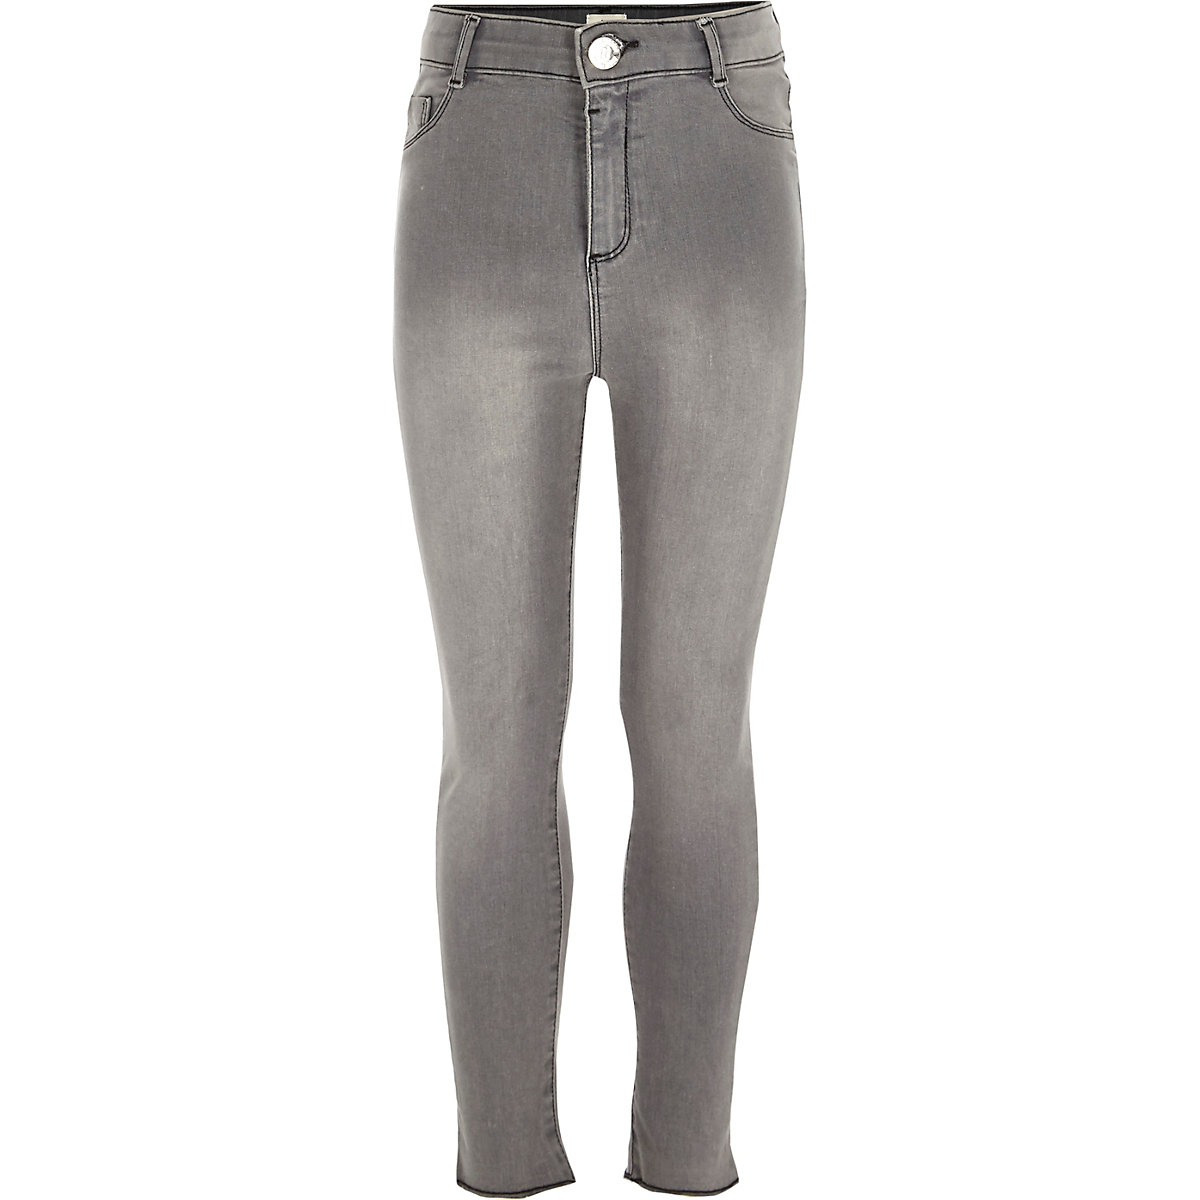 Girls grey high rise Molly jeggings